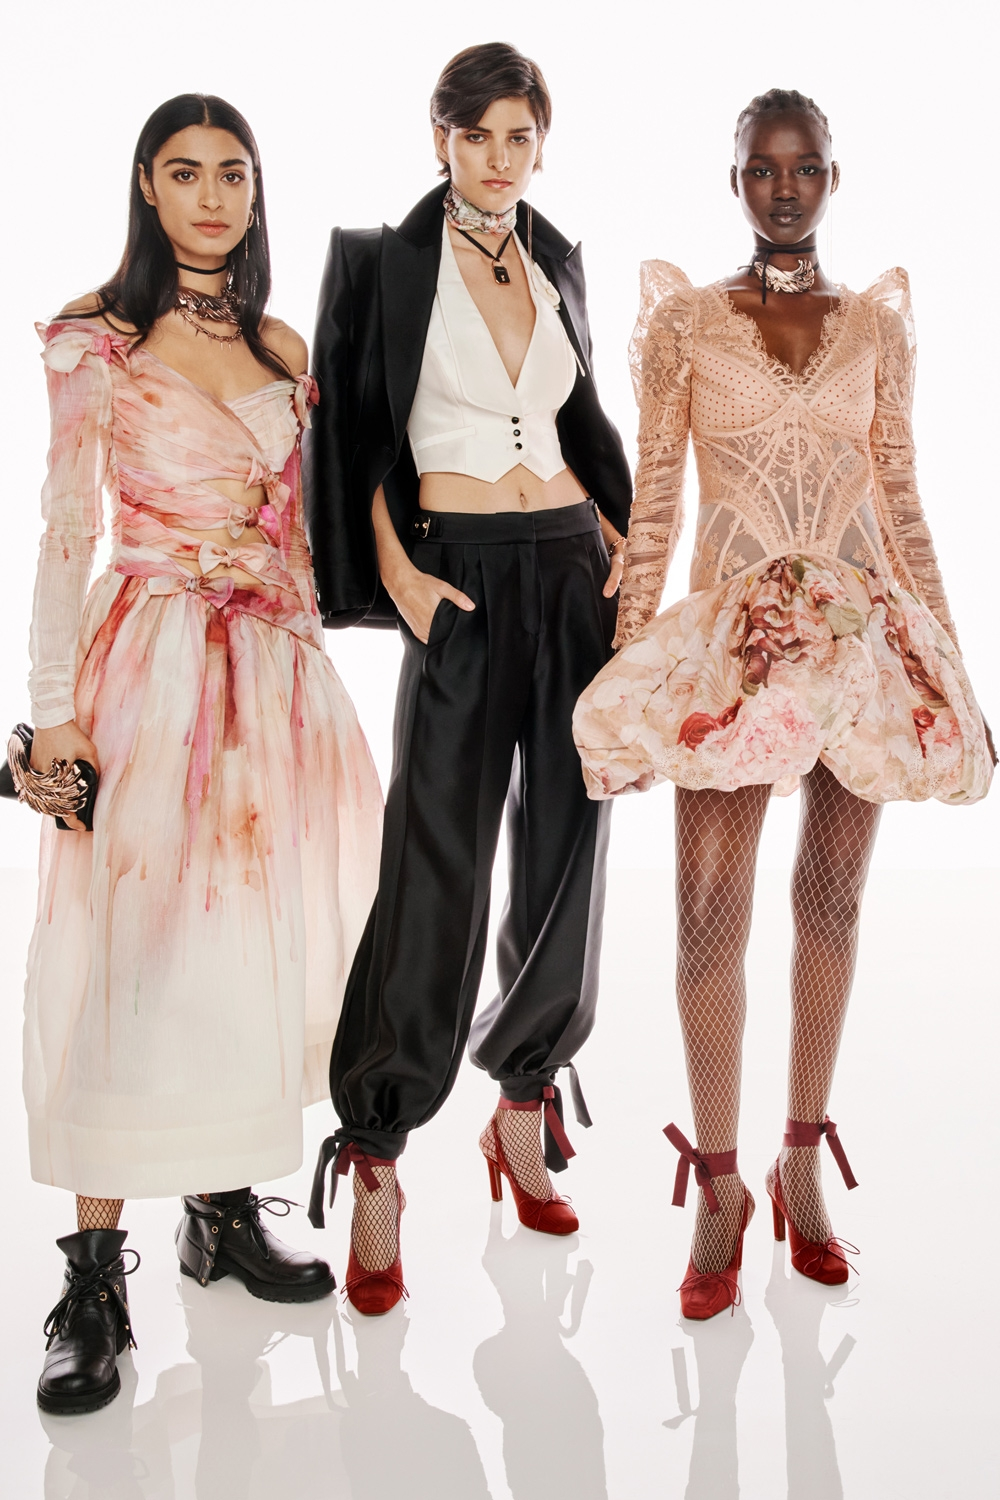 BEHIND THE SHOW SPRING READY TO WEAR 2022: Sophie McFadden, Astrid Holler and Abeny Nhial